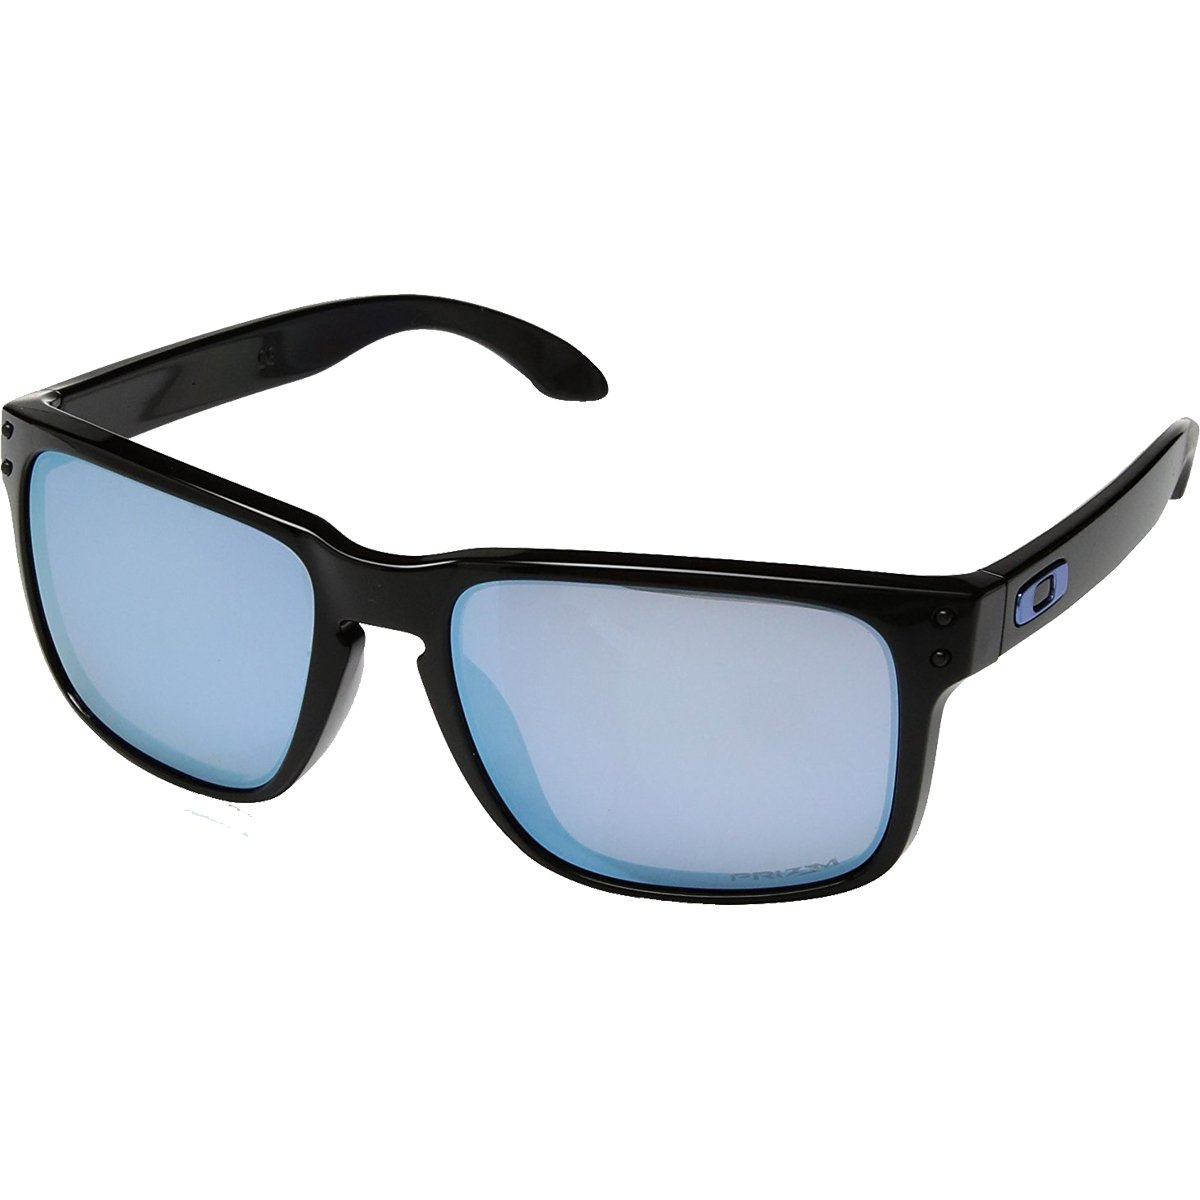 Oakley Holbrook Sunglasses, Polished Black, One Size